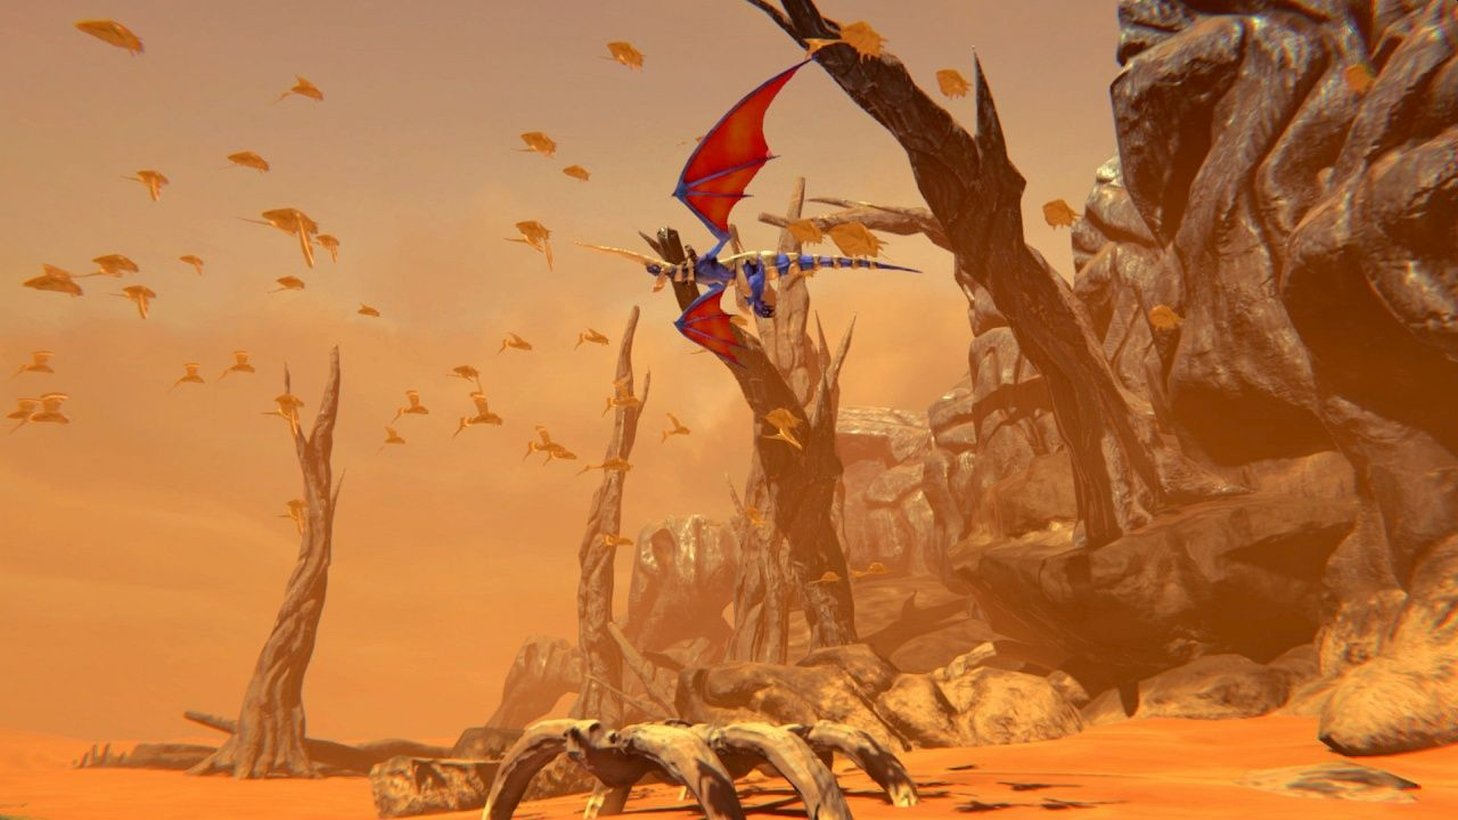 Panzer Dragoon: Remake Lands On Steam And GOG For PC On September 25